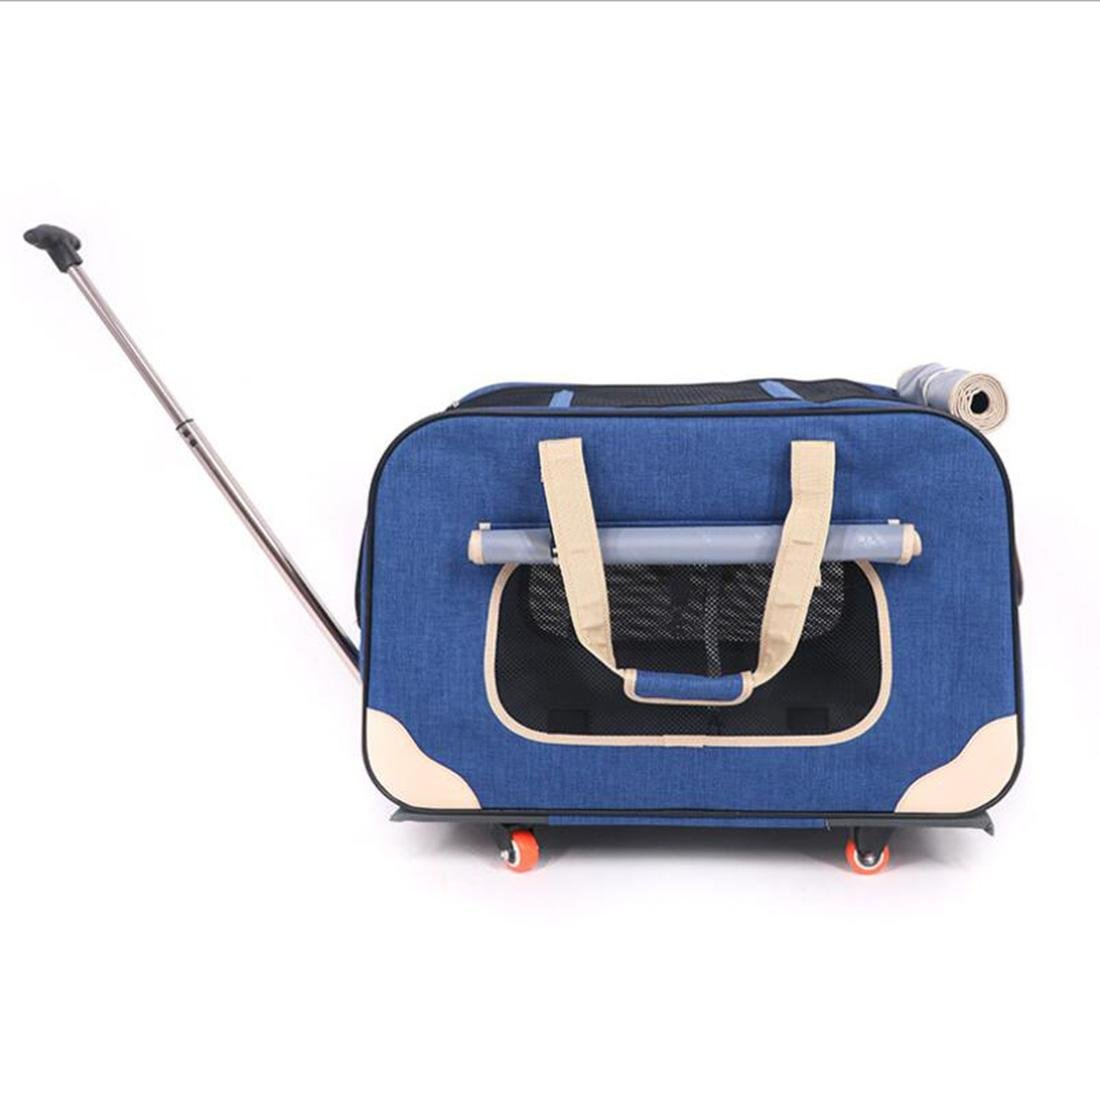 bluee CWBB Portable Pet Trolley Carrier dog Carrier with Wheels Pet backpack Removeable Travel Carrier Bag Folding, bluee